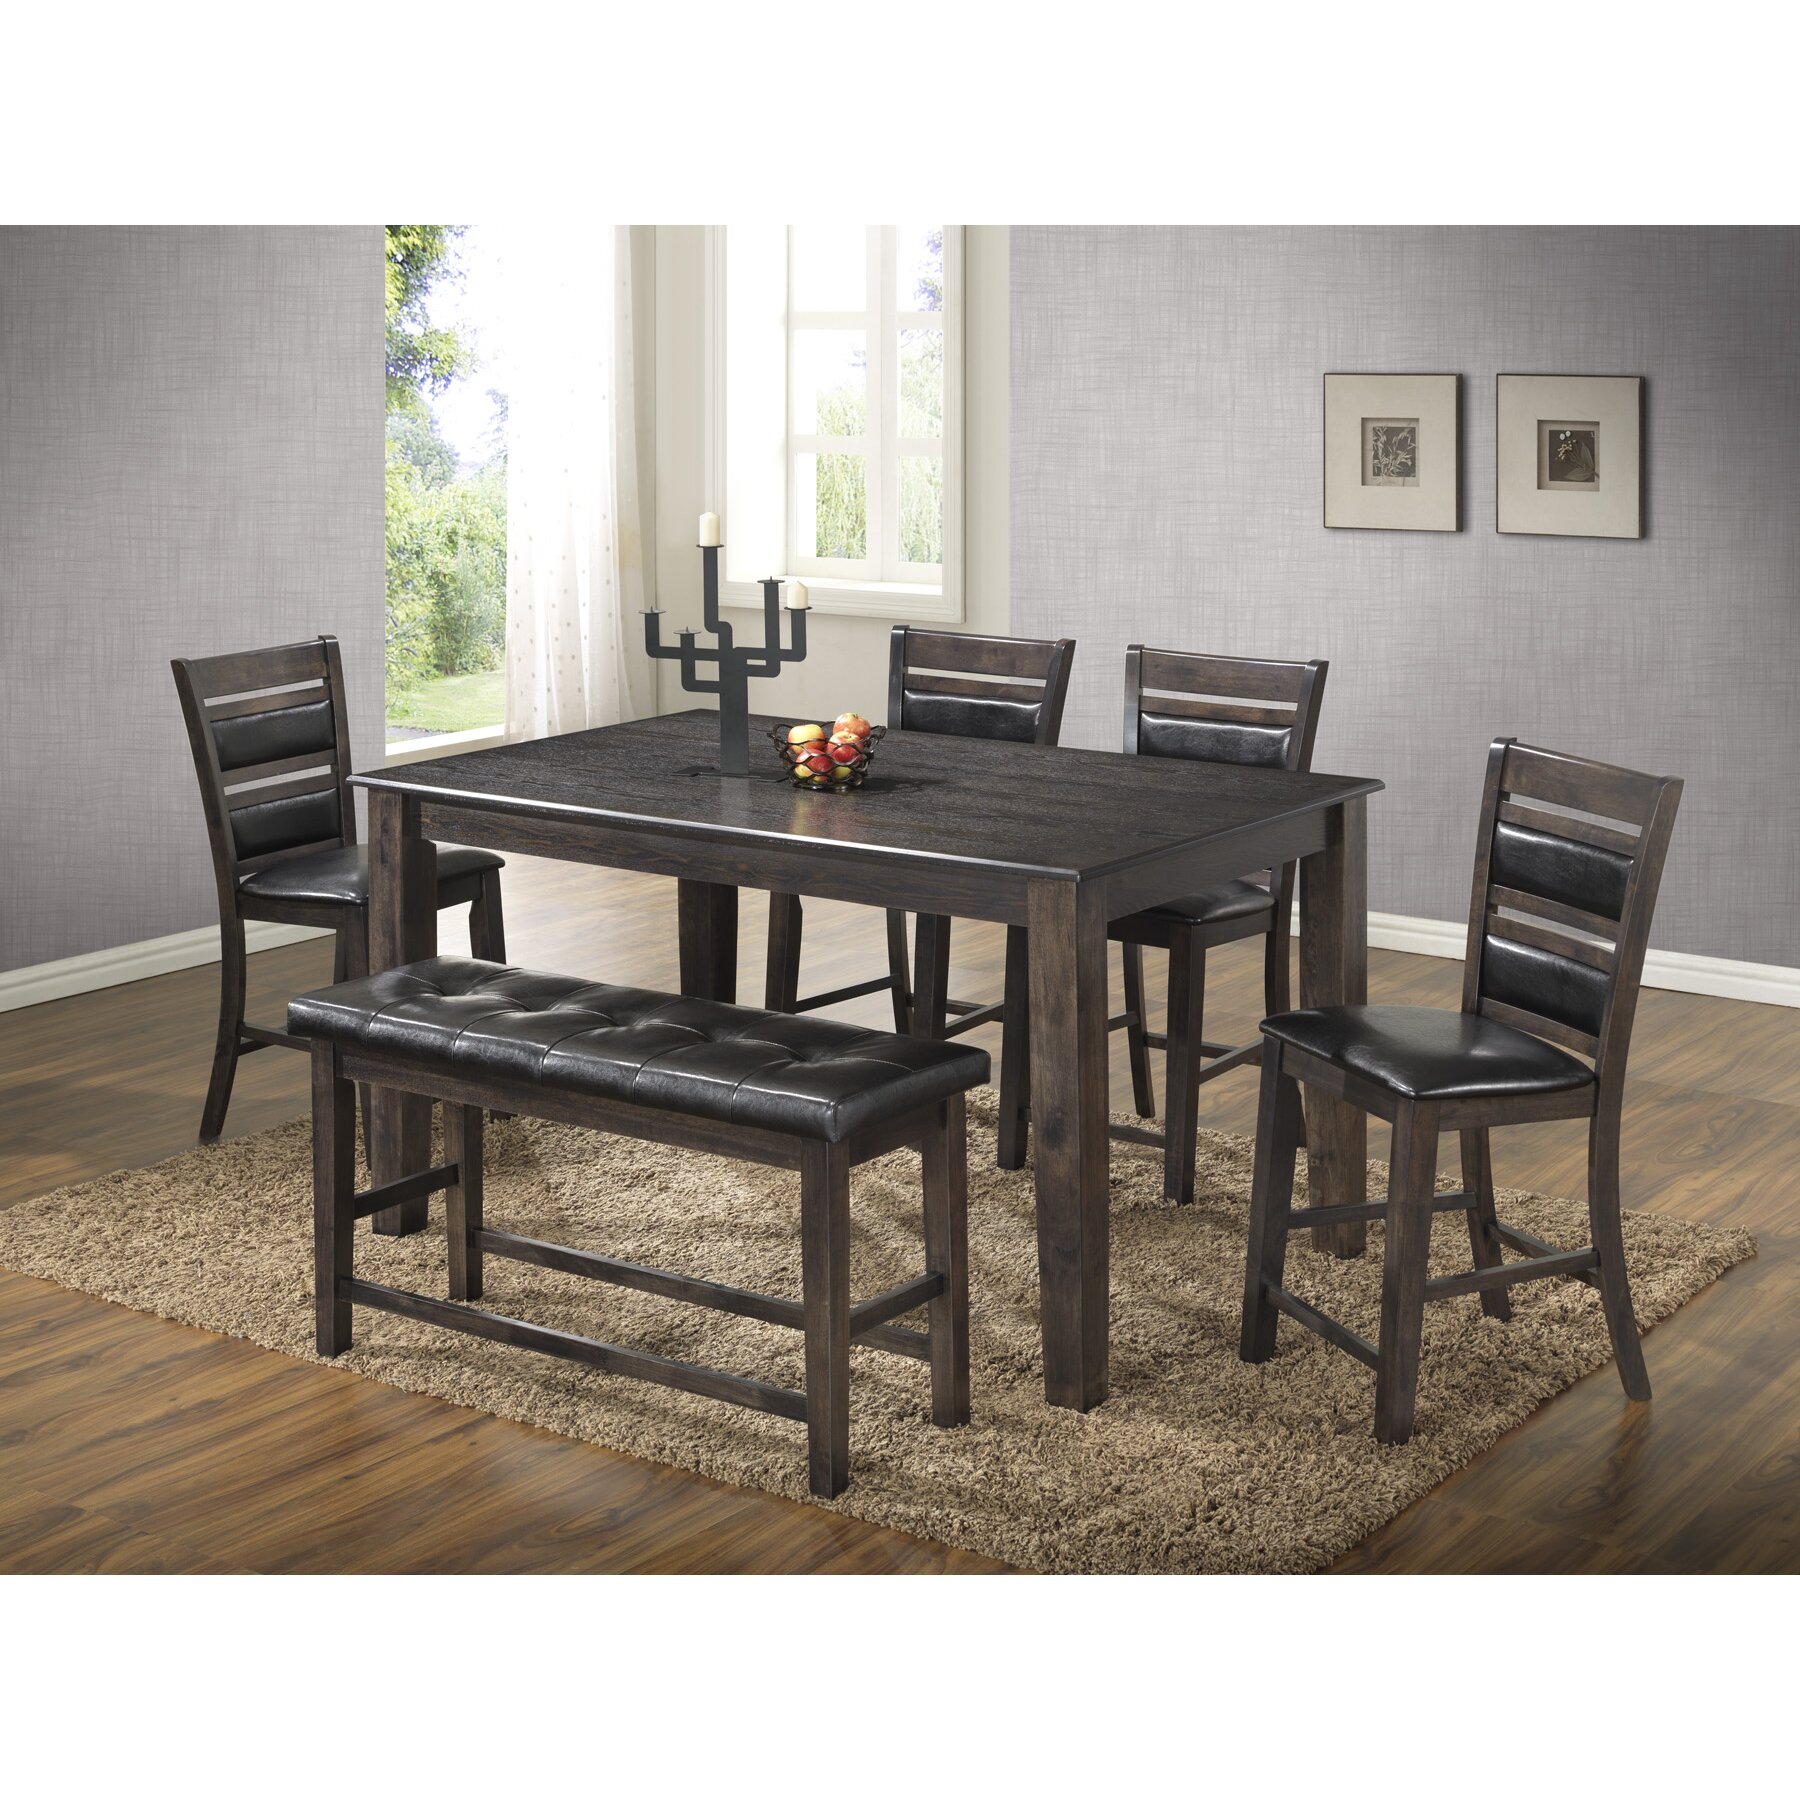 Best quality furniture 6 piece dining set reviews wayfair for Best quality furniture